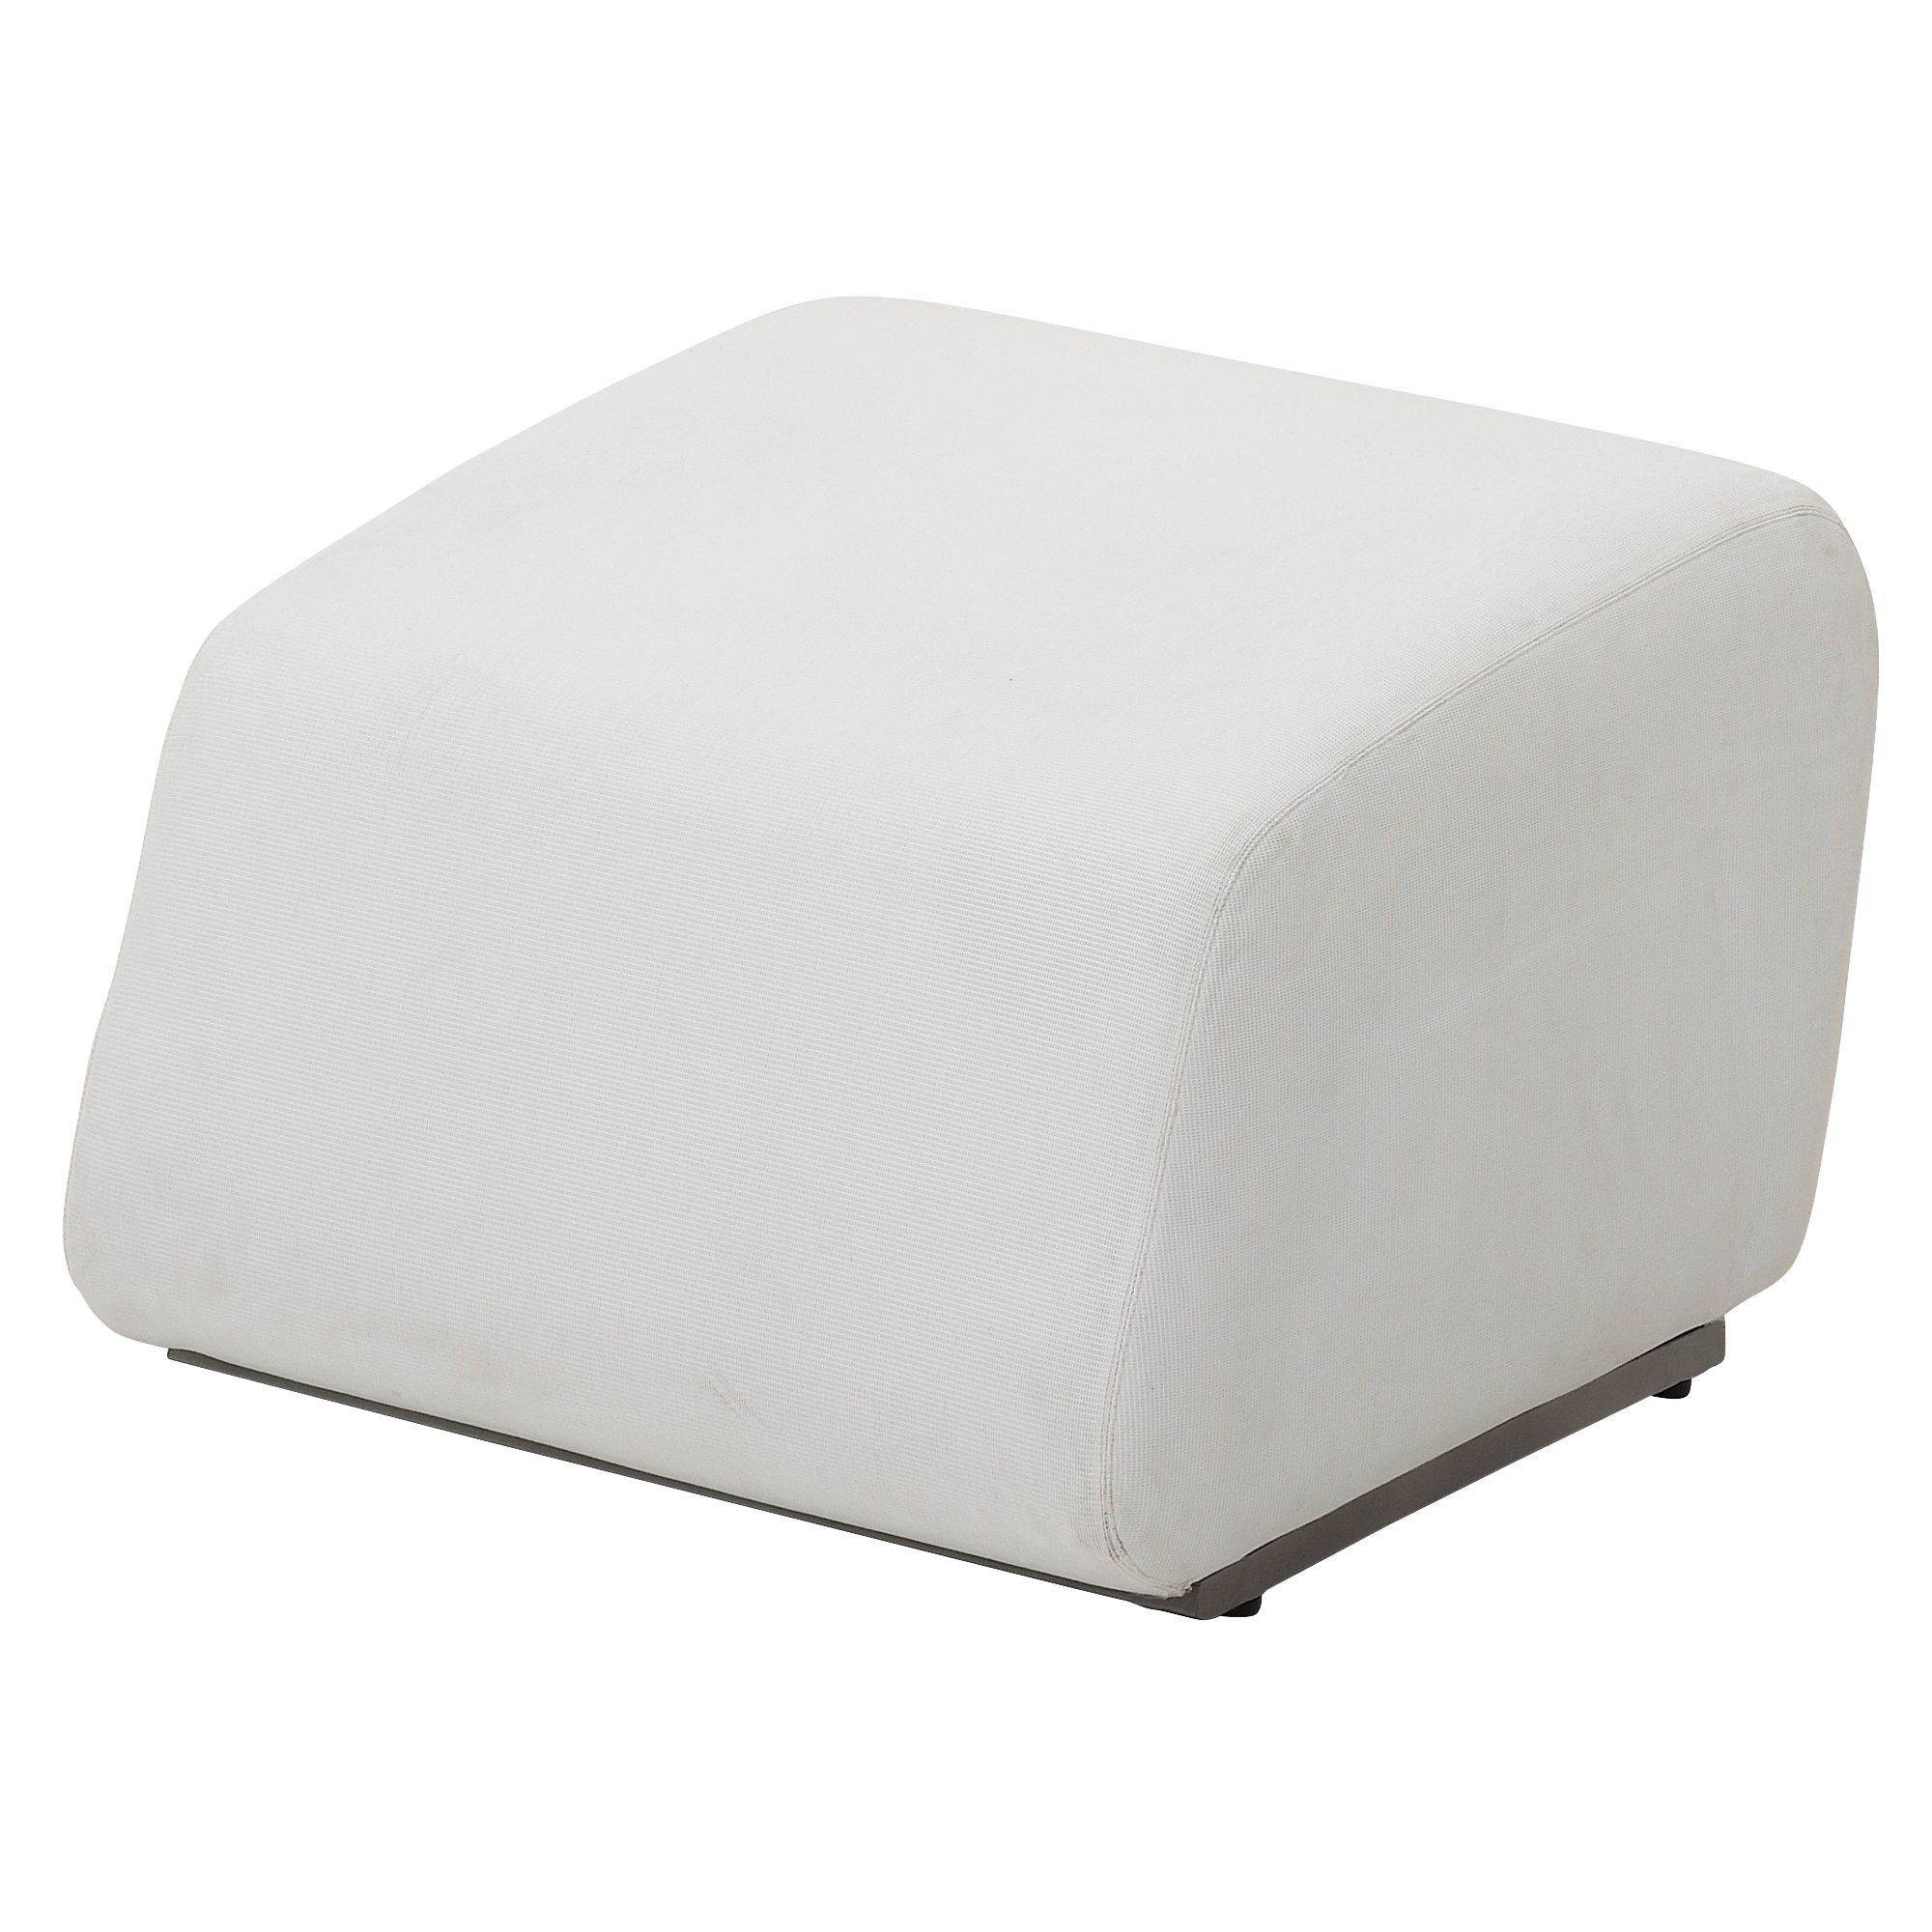 Gloster Club Outdoor Ottoman, Ivory